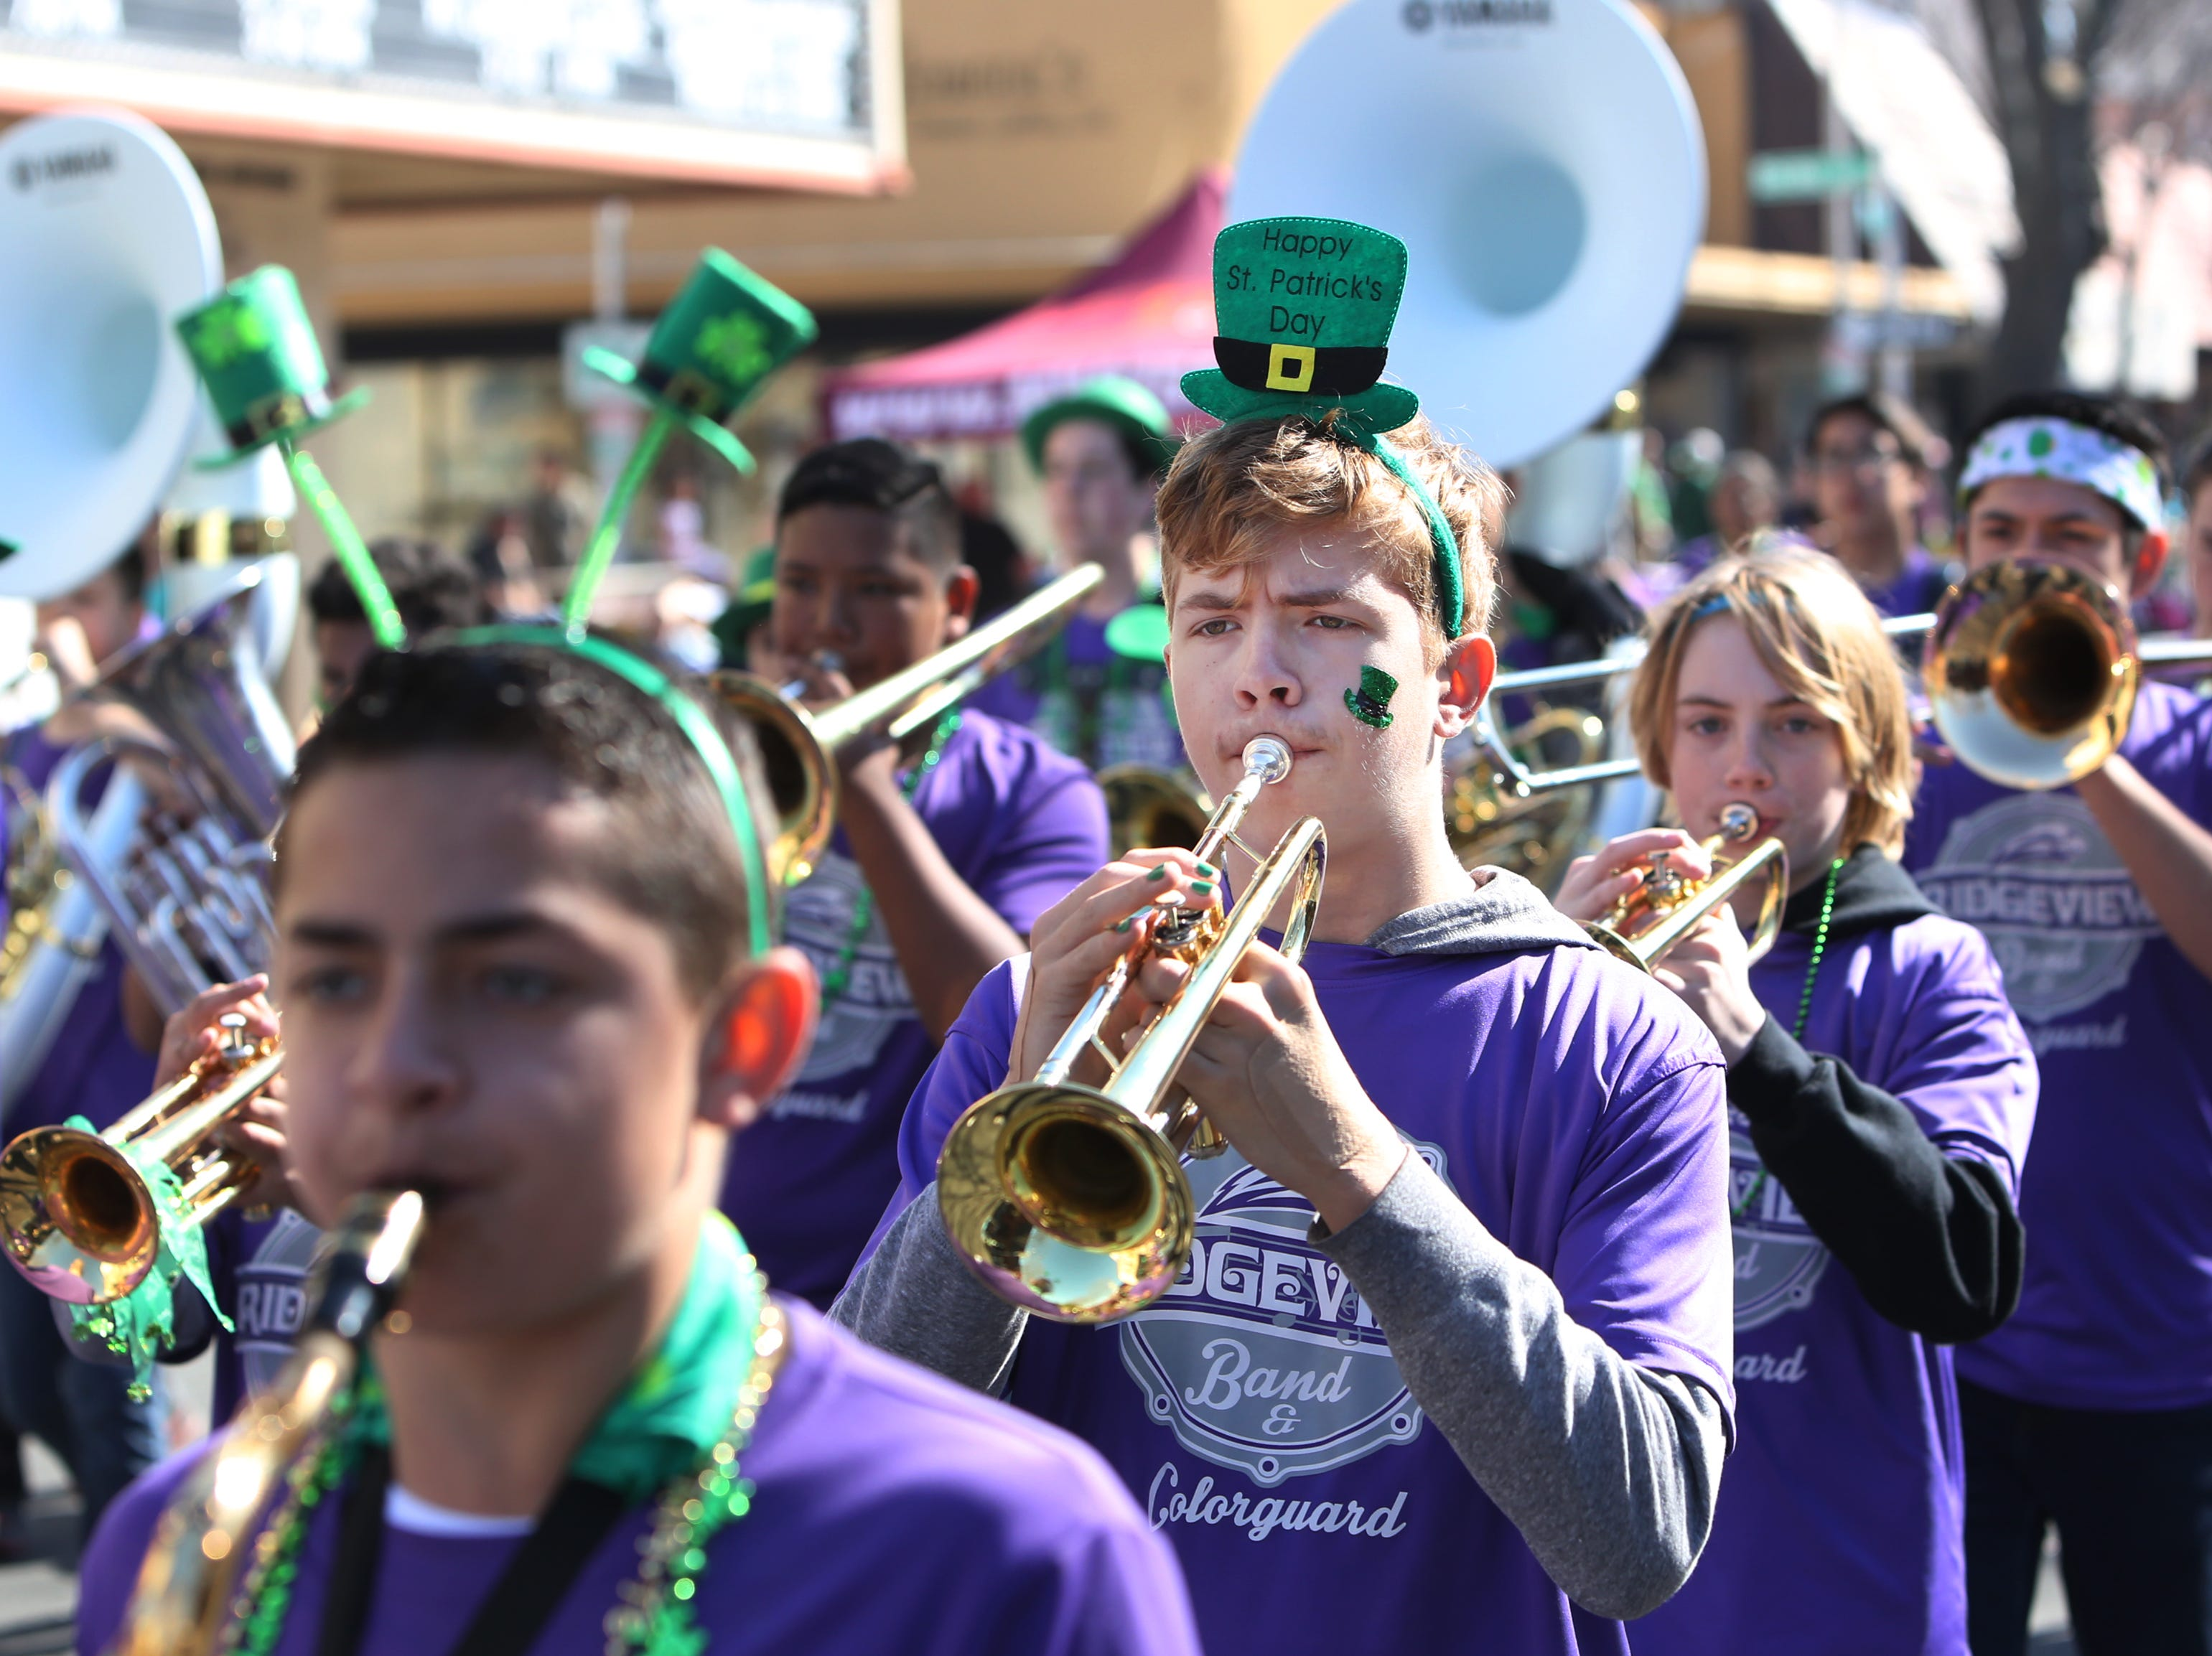 Part of the Ridgeview Band  at this year's St. Patrick's Day parade rolling through Main Street Saturday, March 16, 2019 in Visalia, Calif.